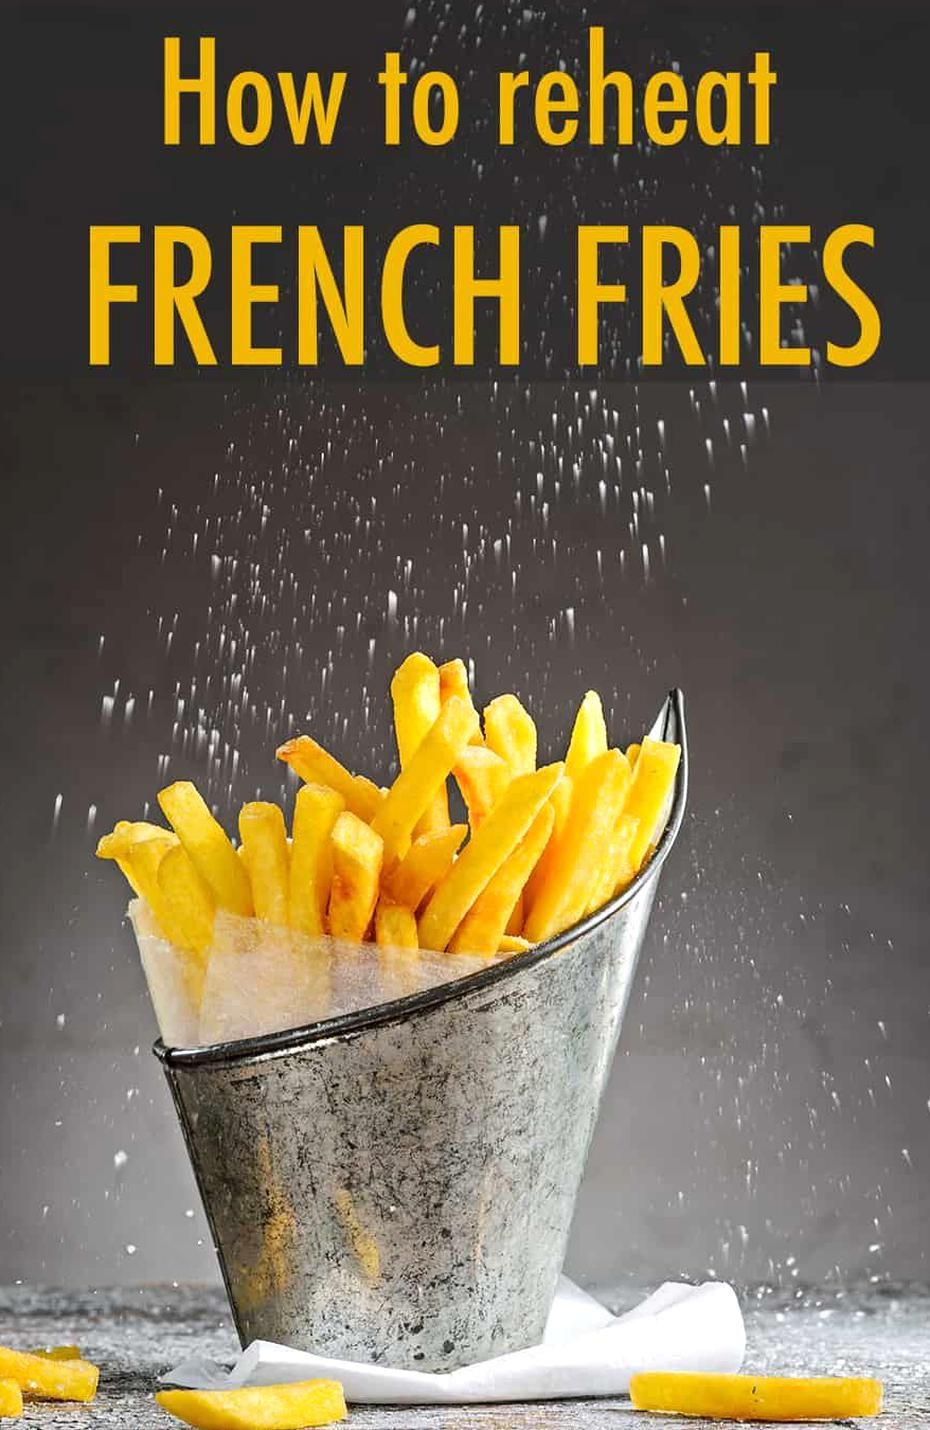 Co336 how to reheat french fries p1 in 2020 reheat